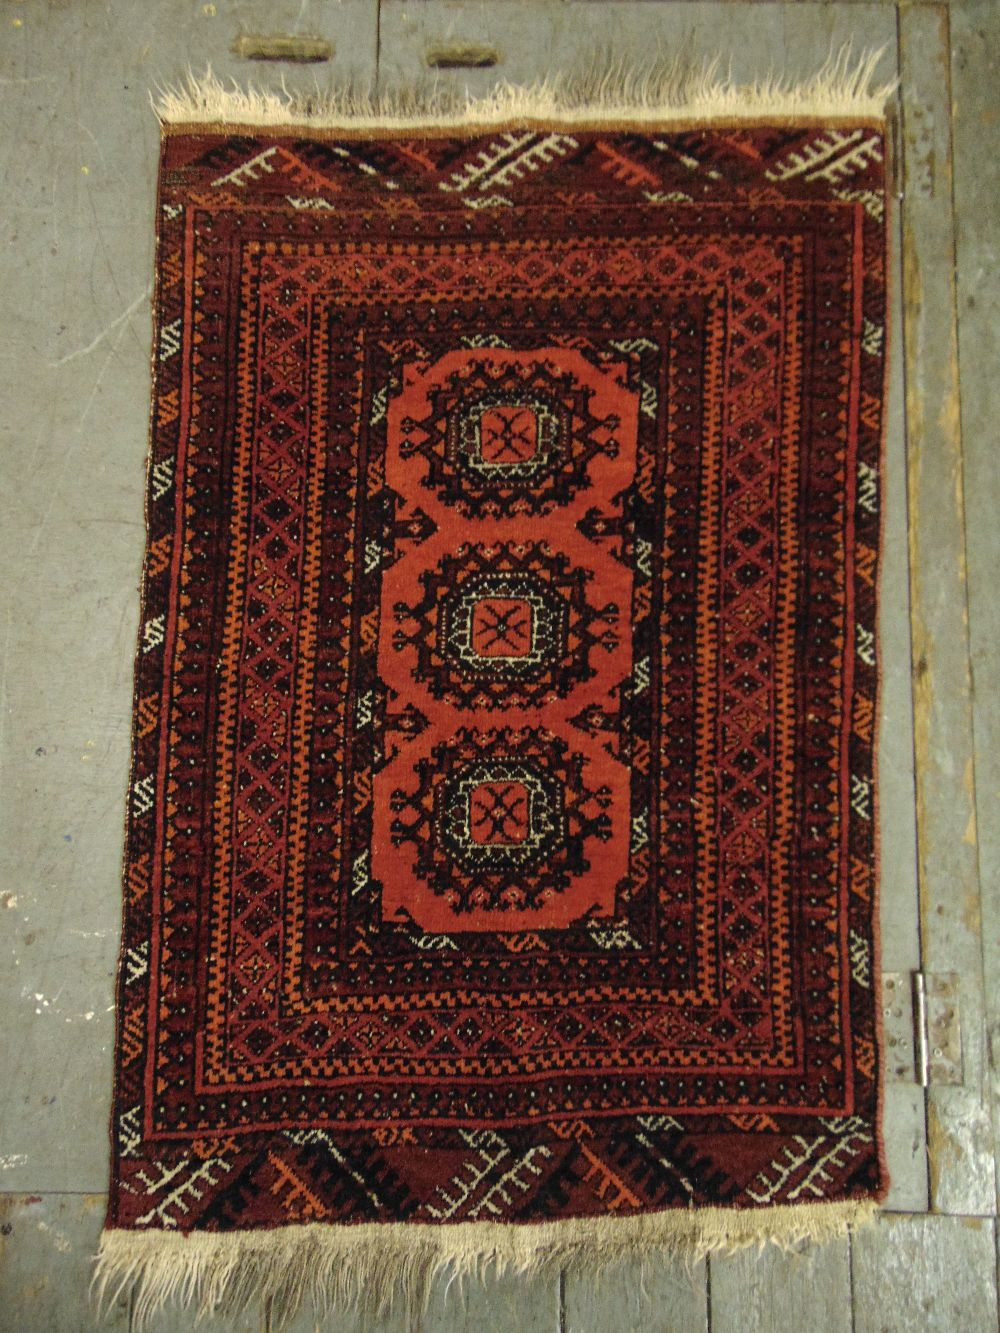 Lot 33 - Persian wool carpet red and orange ground with repeating geometric pattern and border, 107 x 73cm